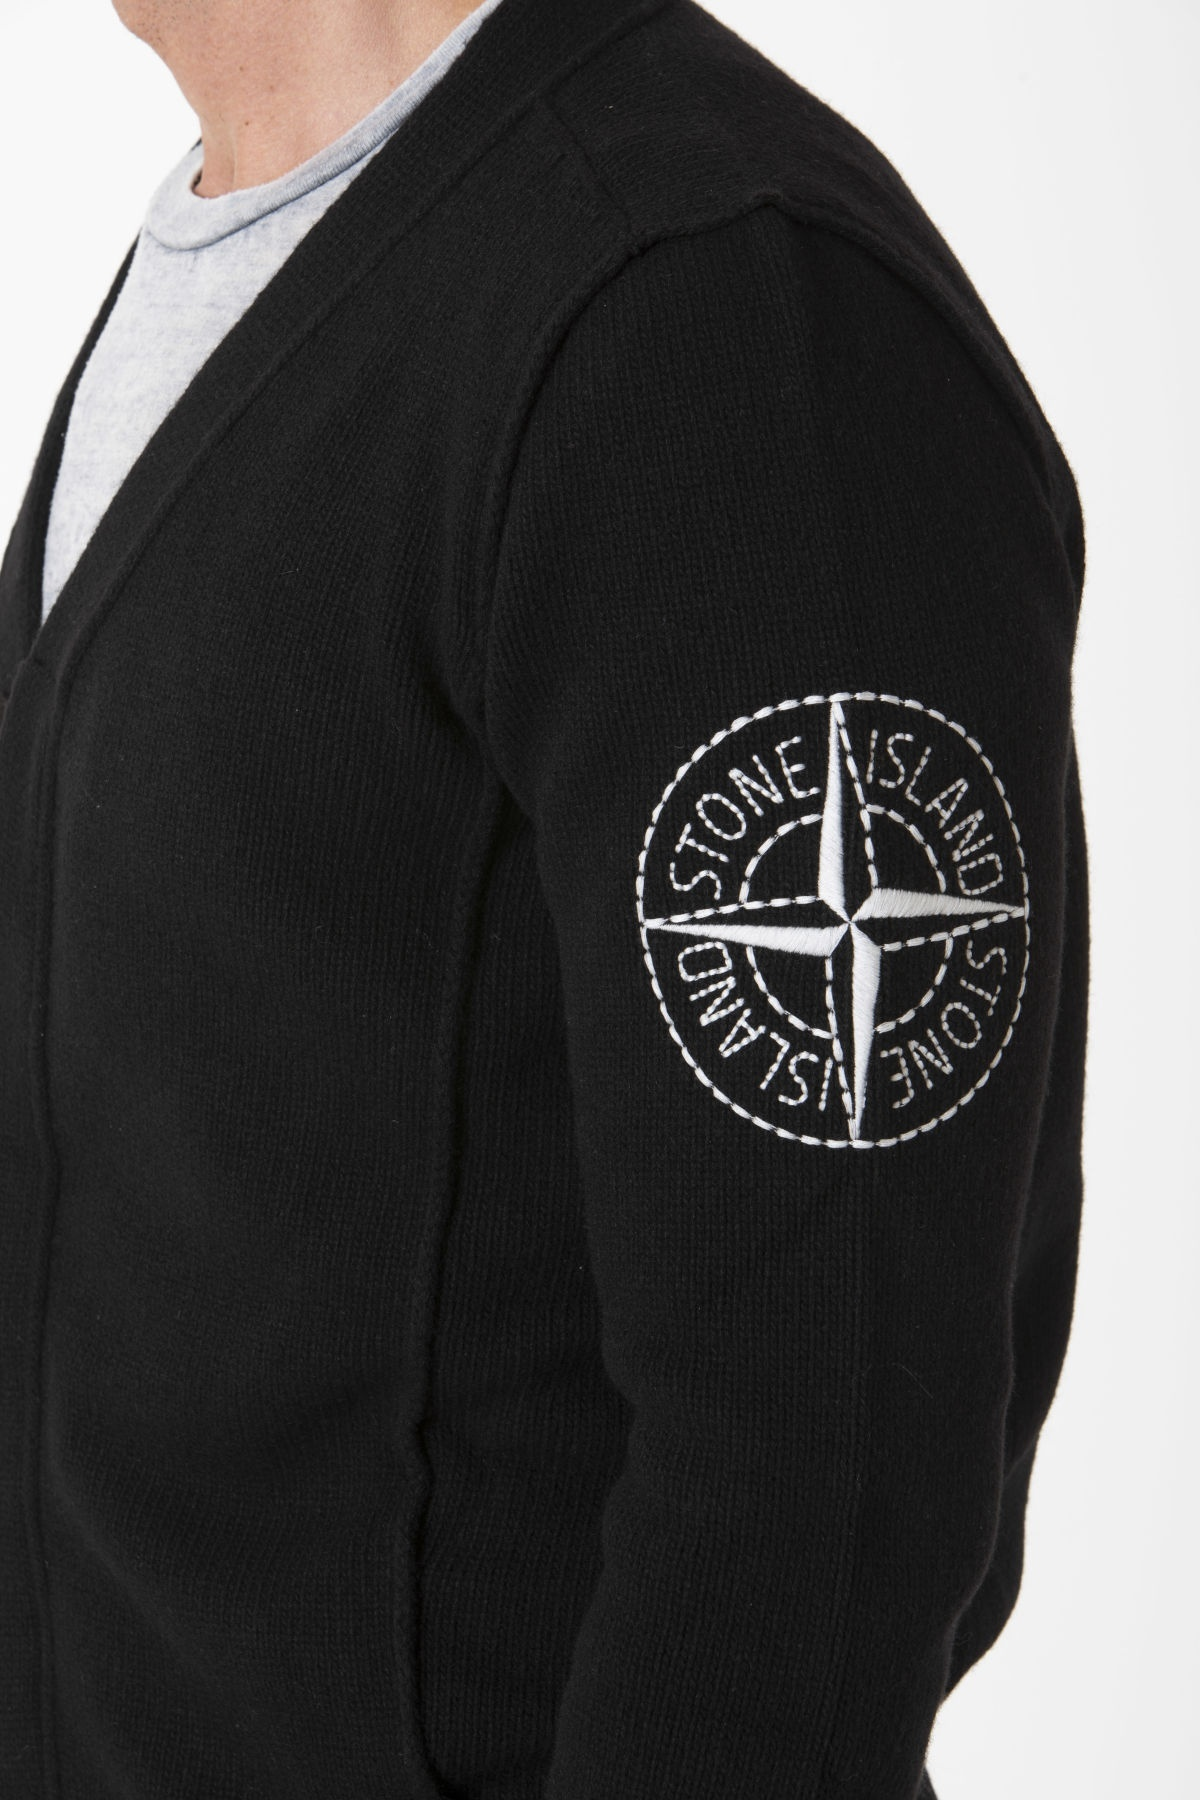 Cardigan for man STONE ISLAND F/W 19-20